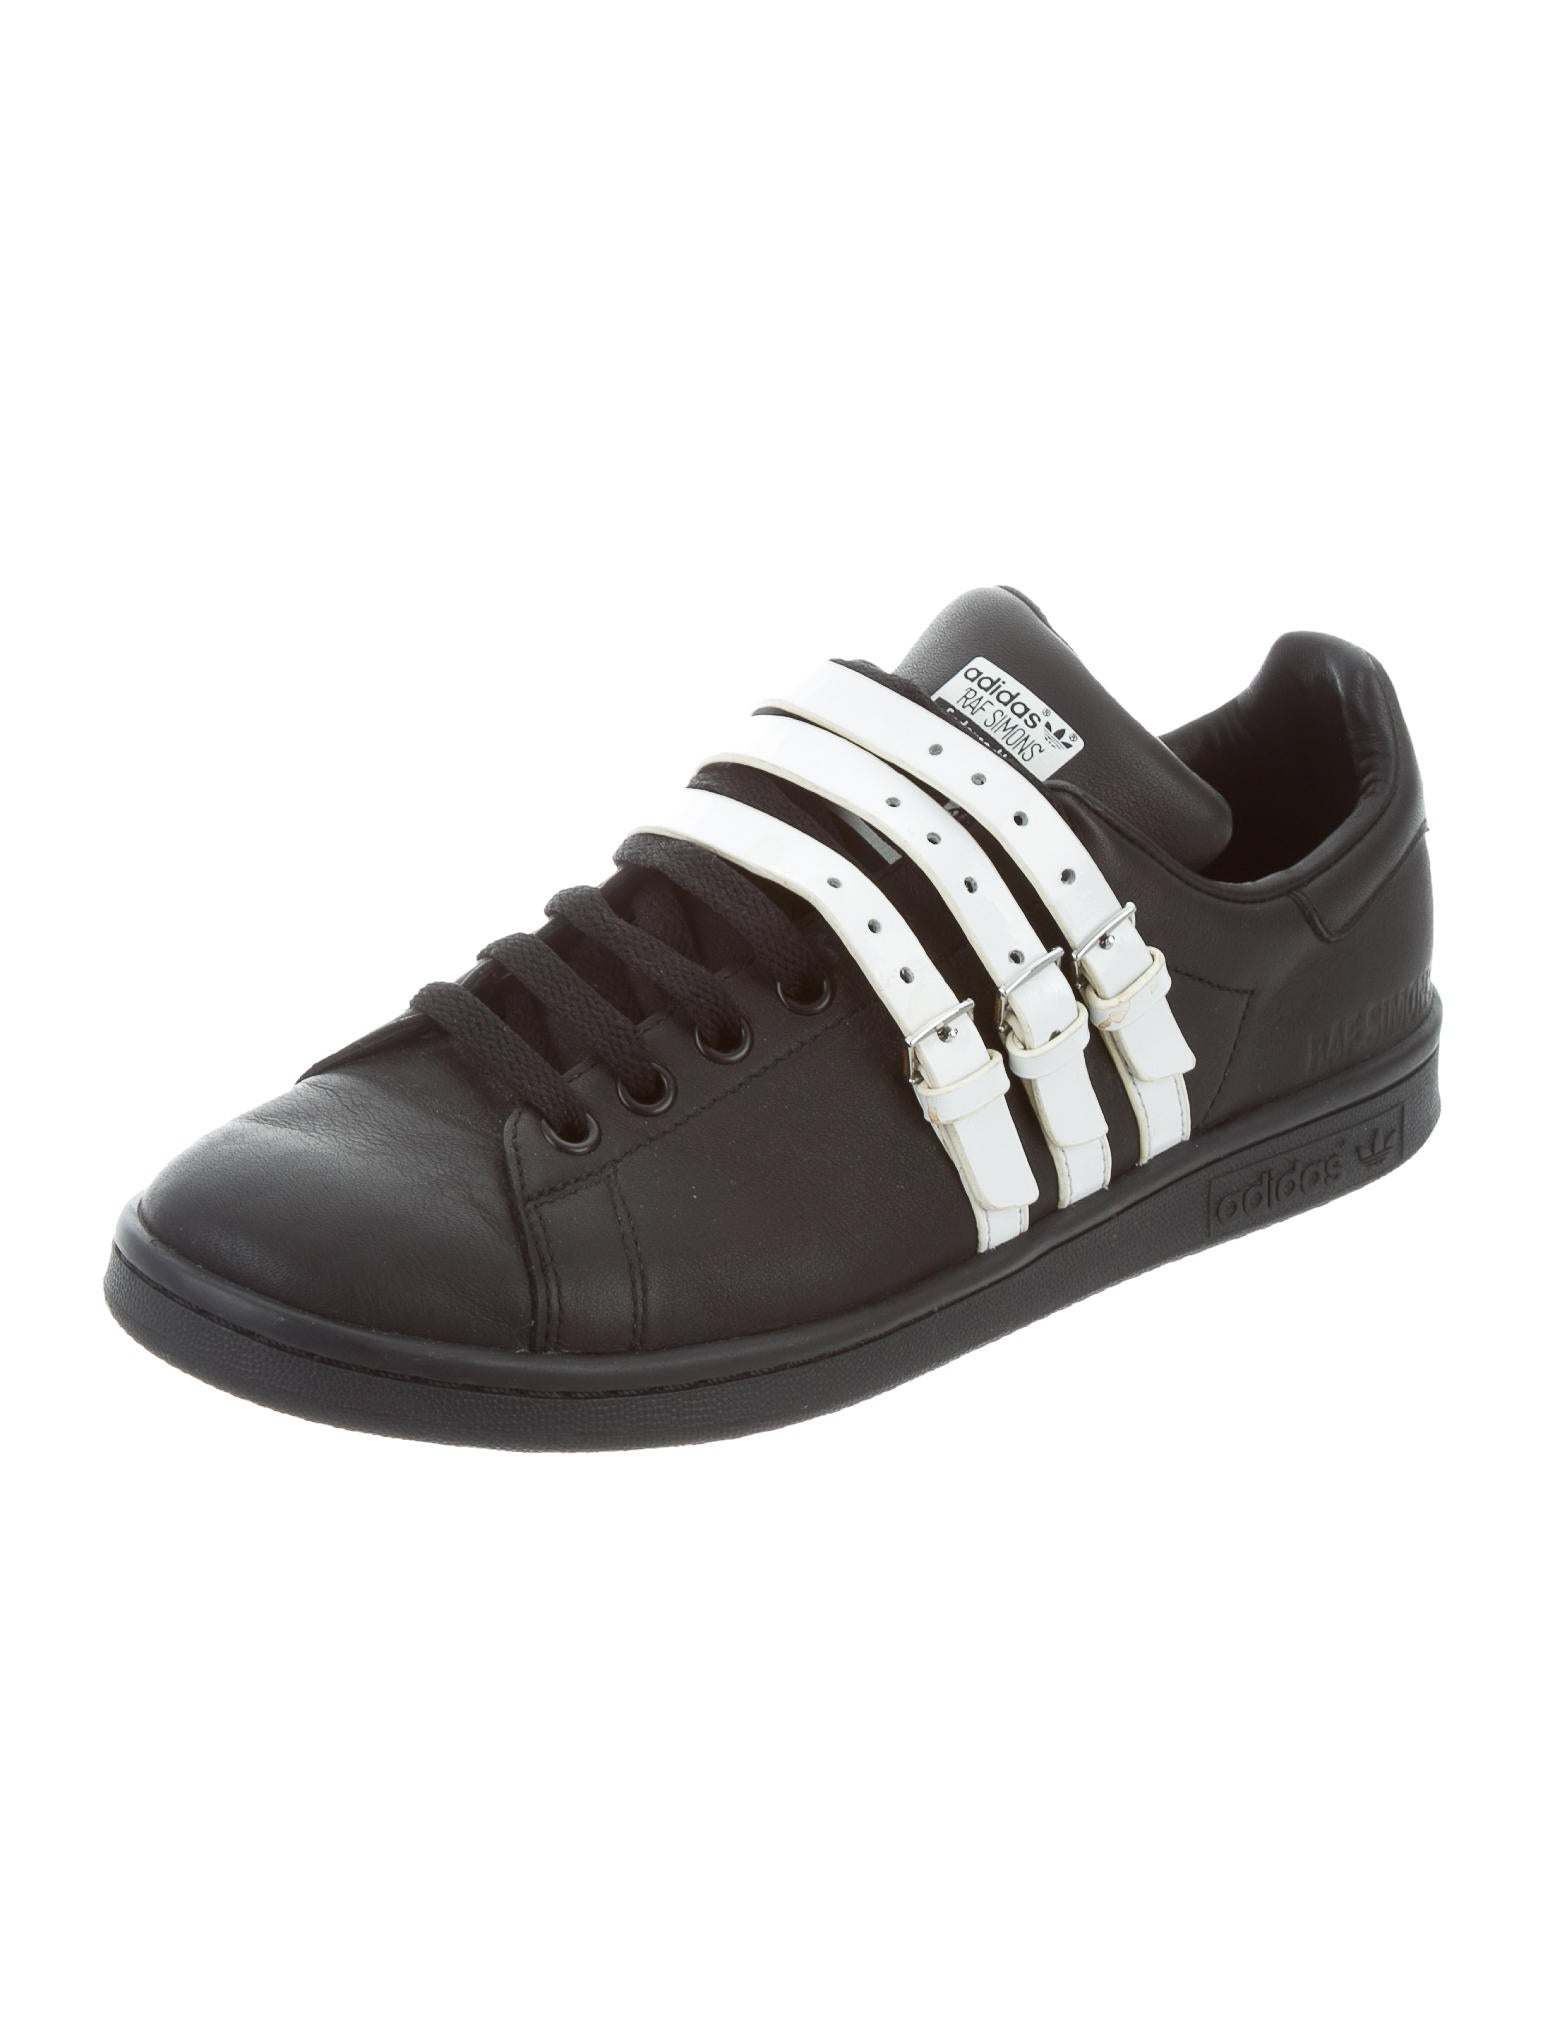 raf simons x adidas leather low top sneakers shoes. Black Bedroom Furniture Sets. Home Design Ideas